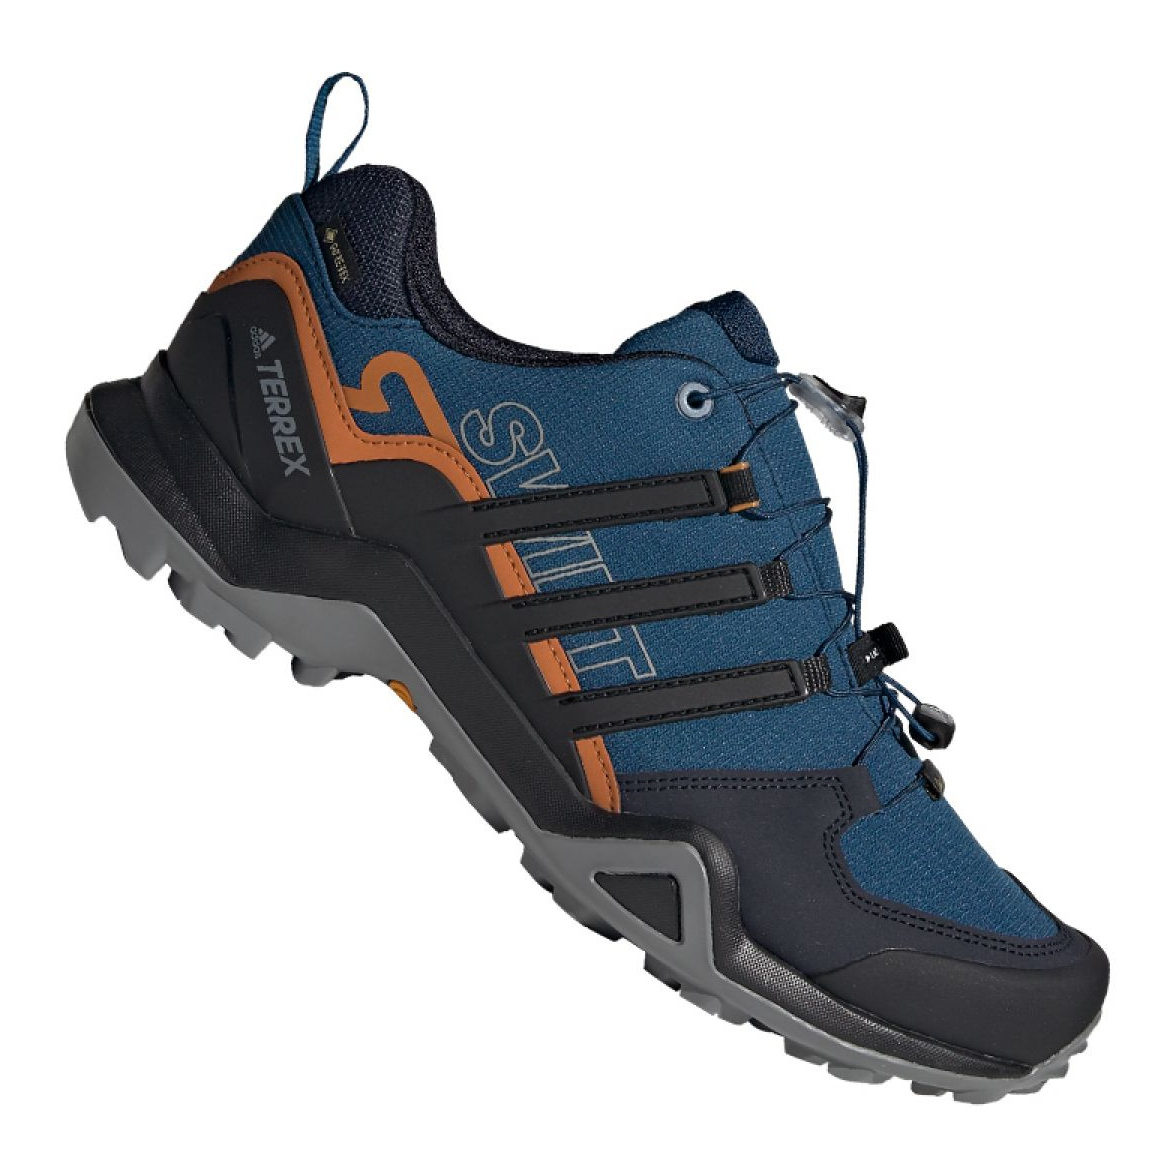 pretty cheap hot new products factory outlet Details about Adidas Terrex Swift R2 Gtx M G26553 shoes